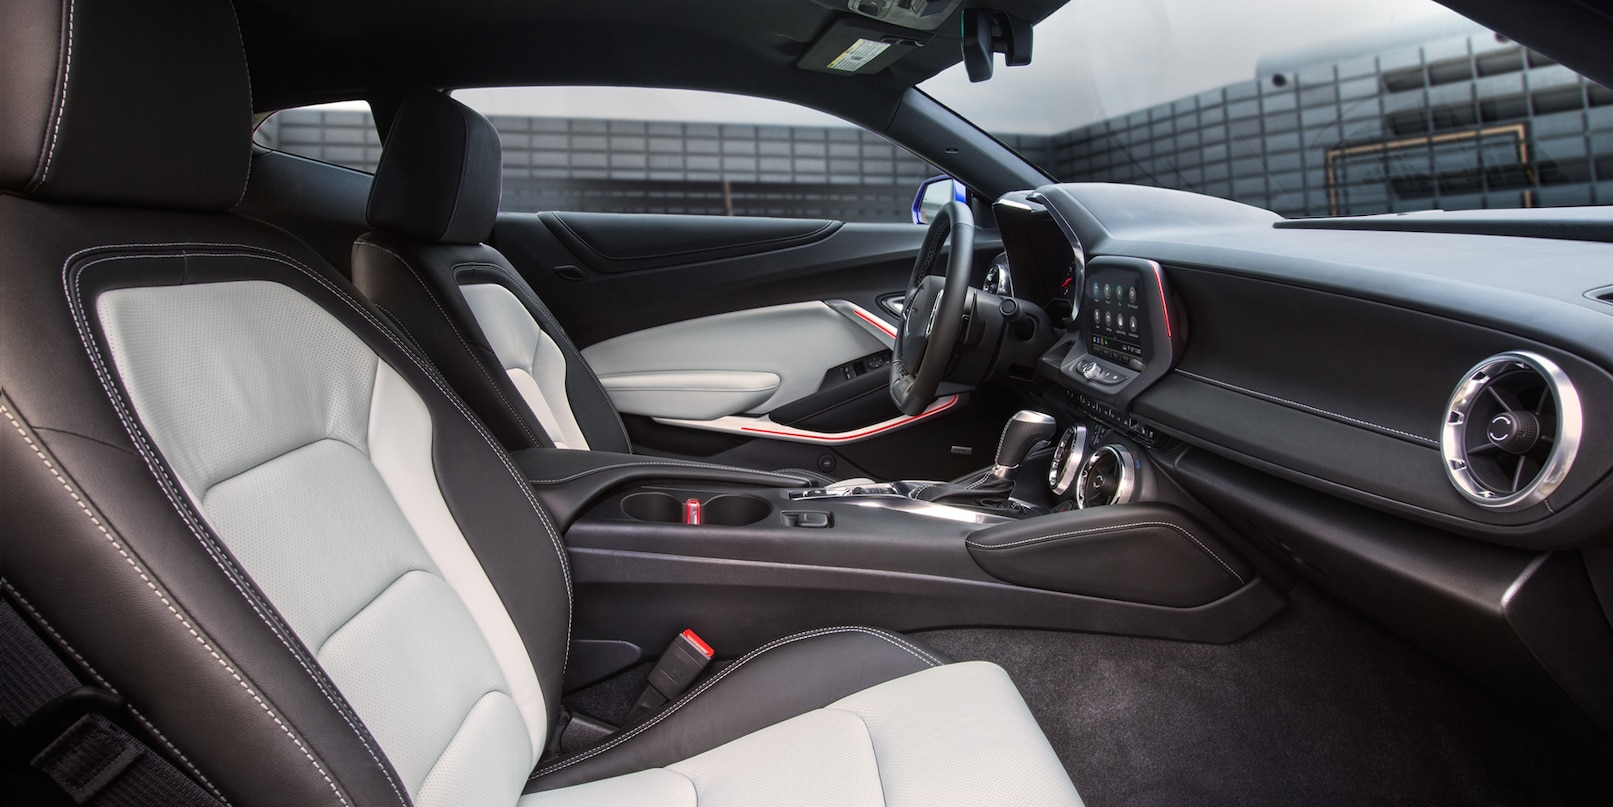 Interior of the 2019 Camaro